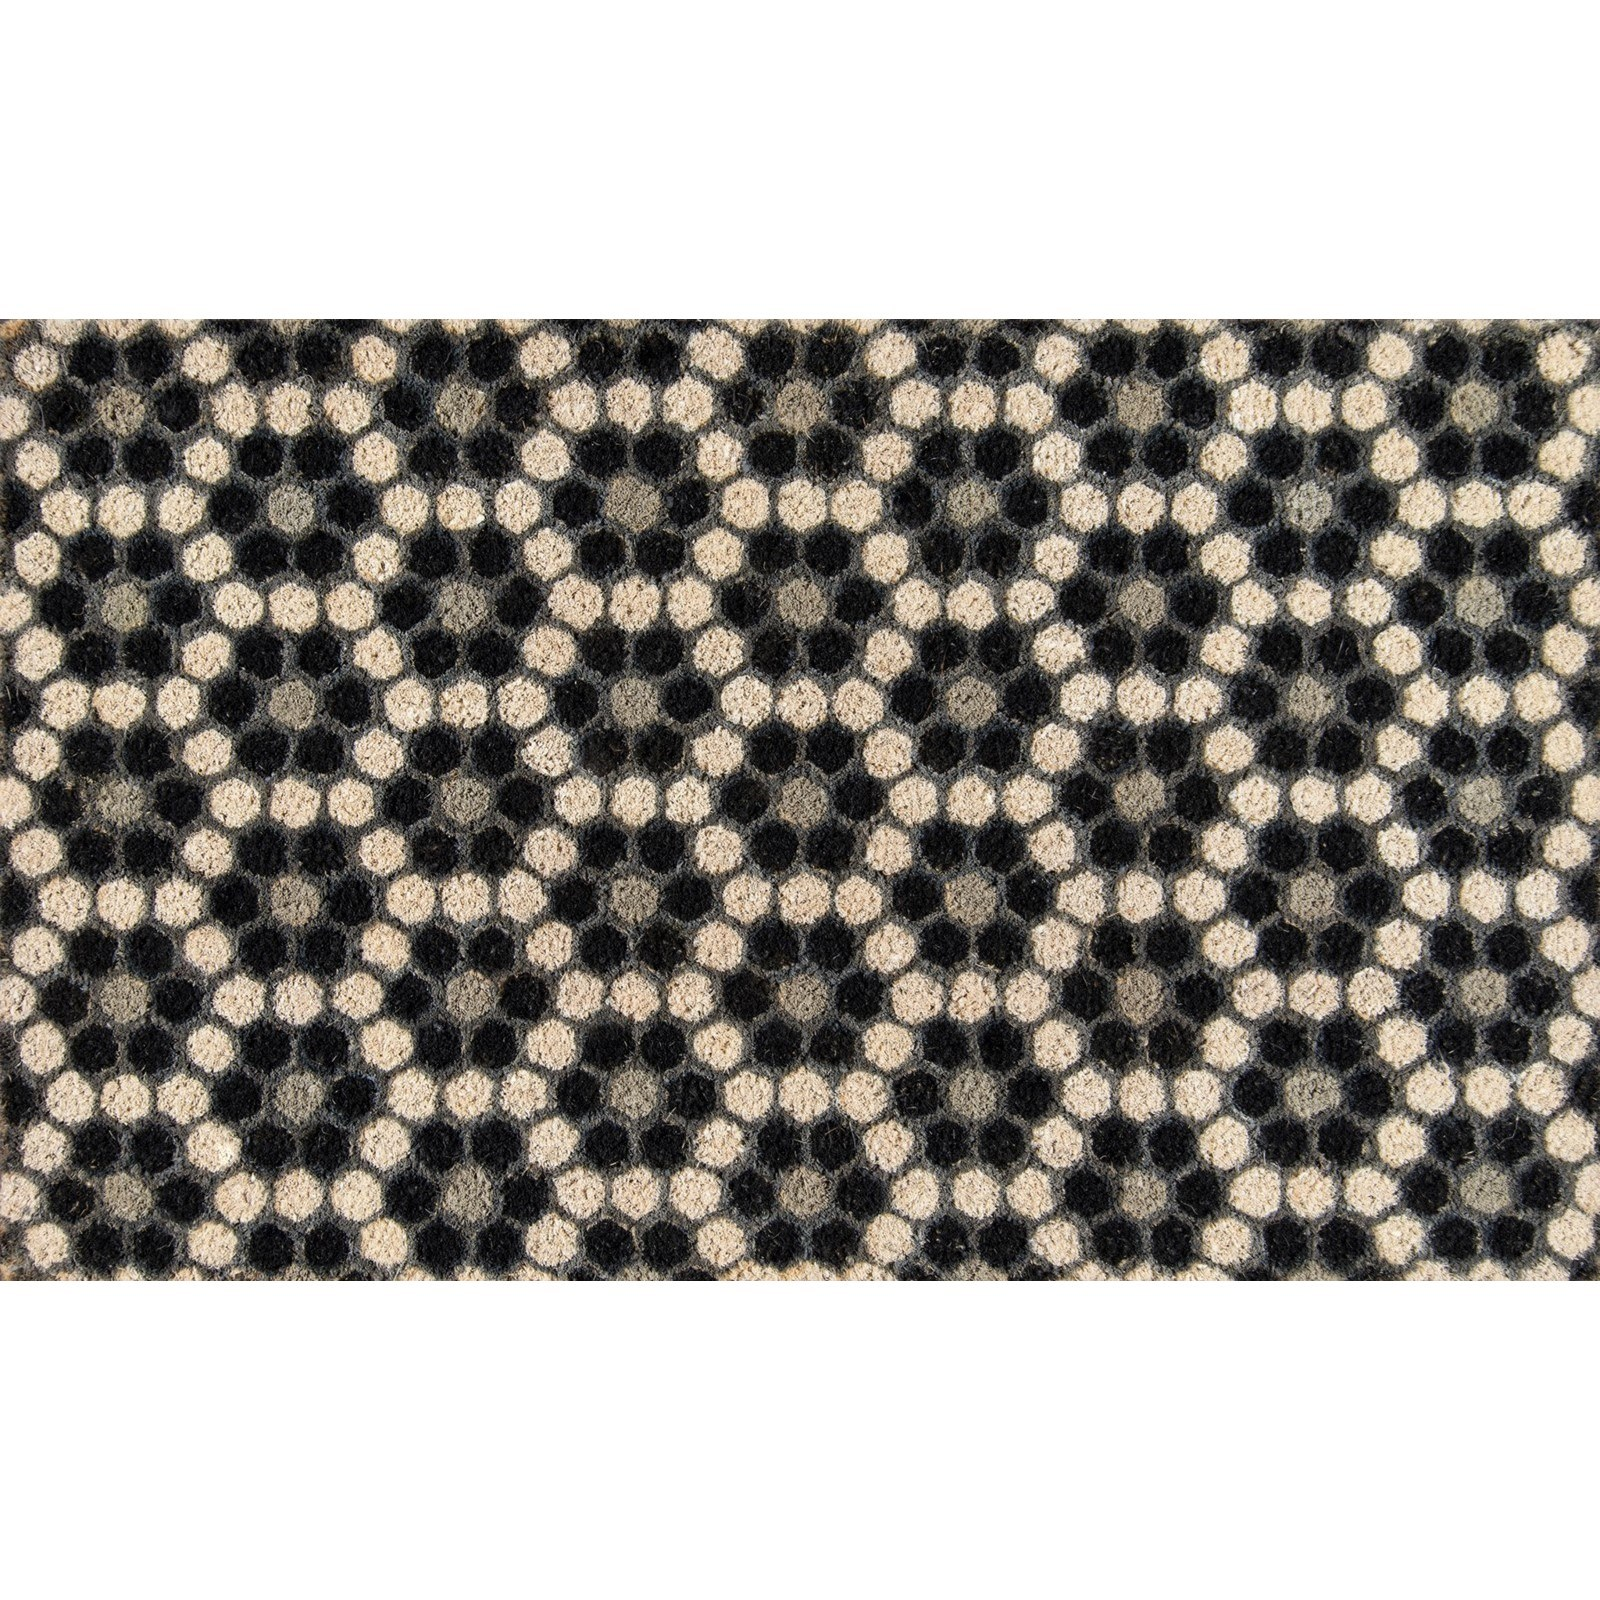 "Black Hex Tile 1'6"" x 2'6"" Rug"